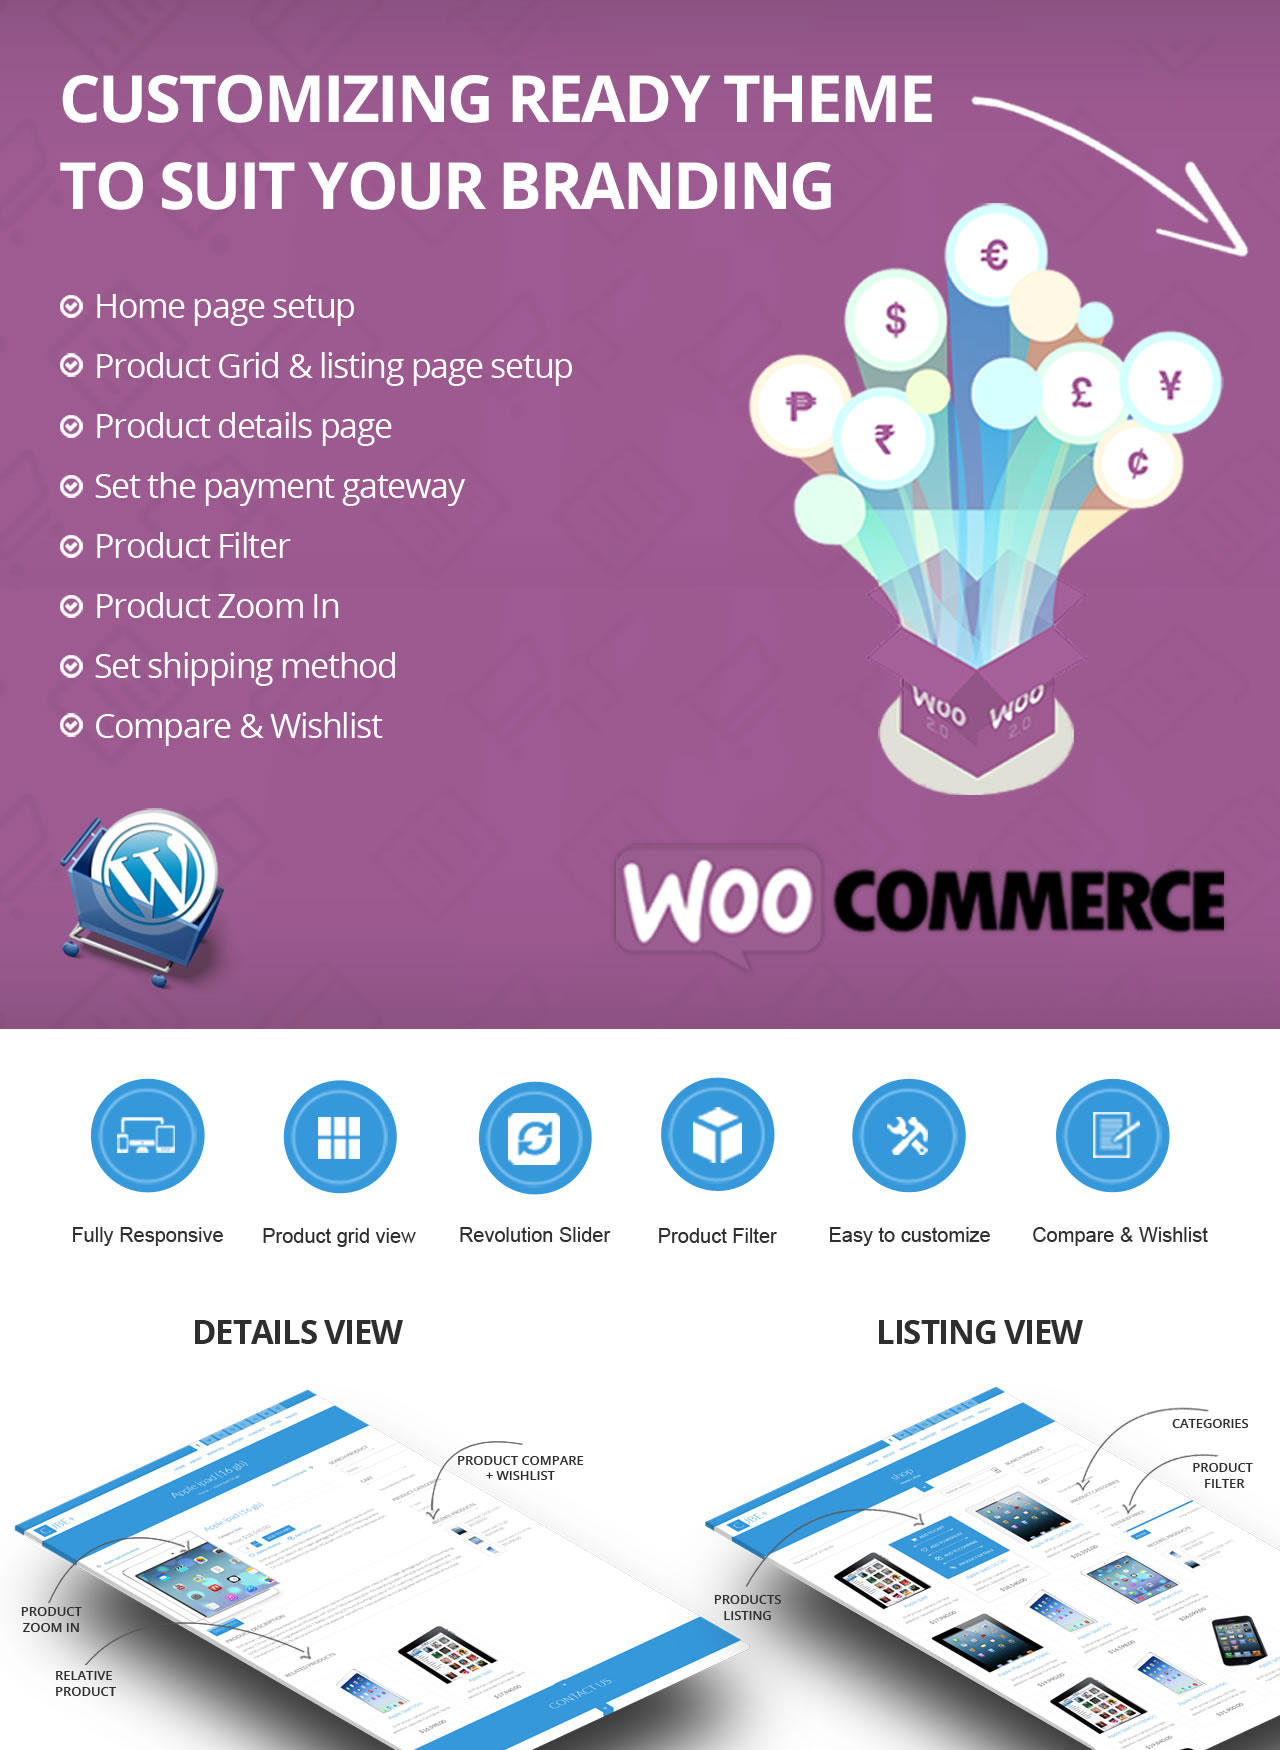 Wordpress eCommerce - WooComerce Complete Site Setup by dasinfomedia - 75082